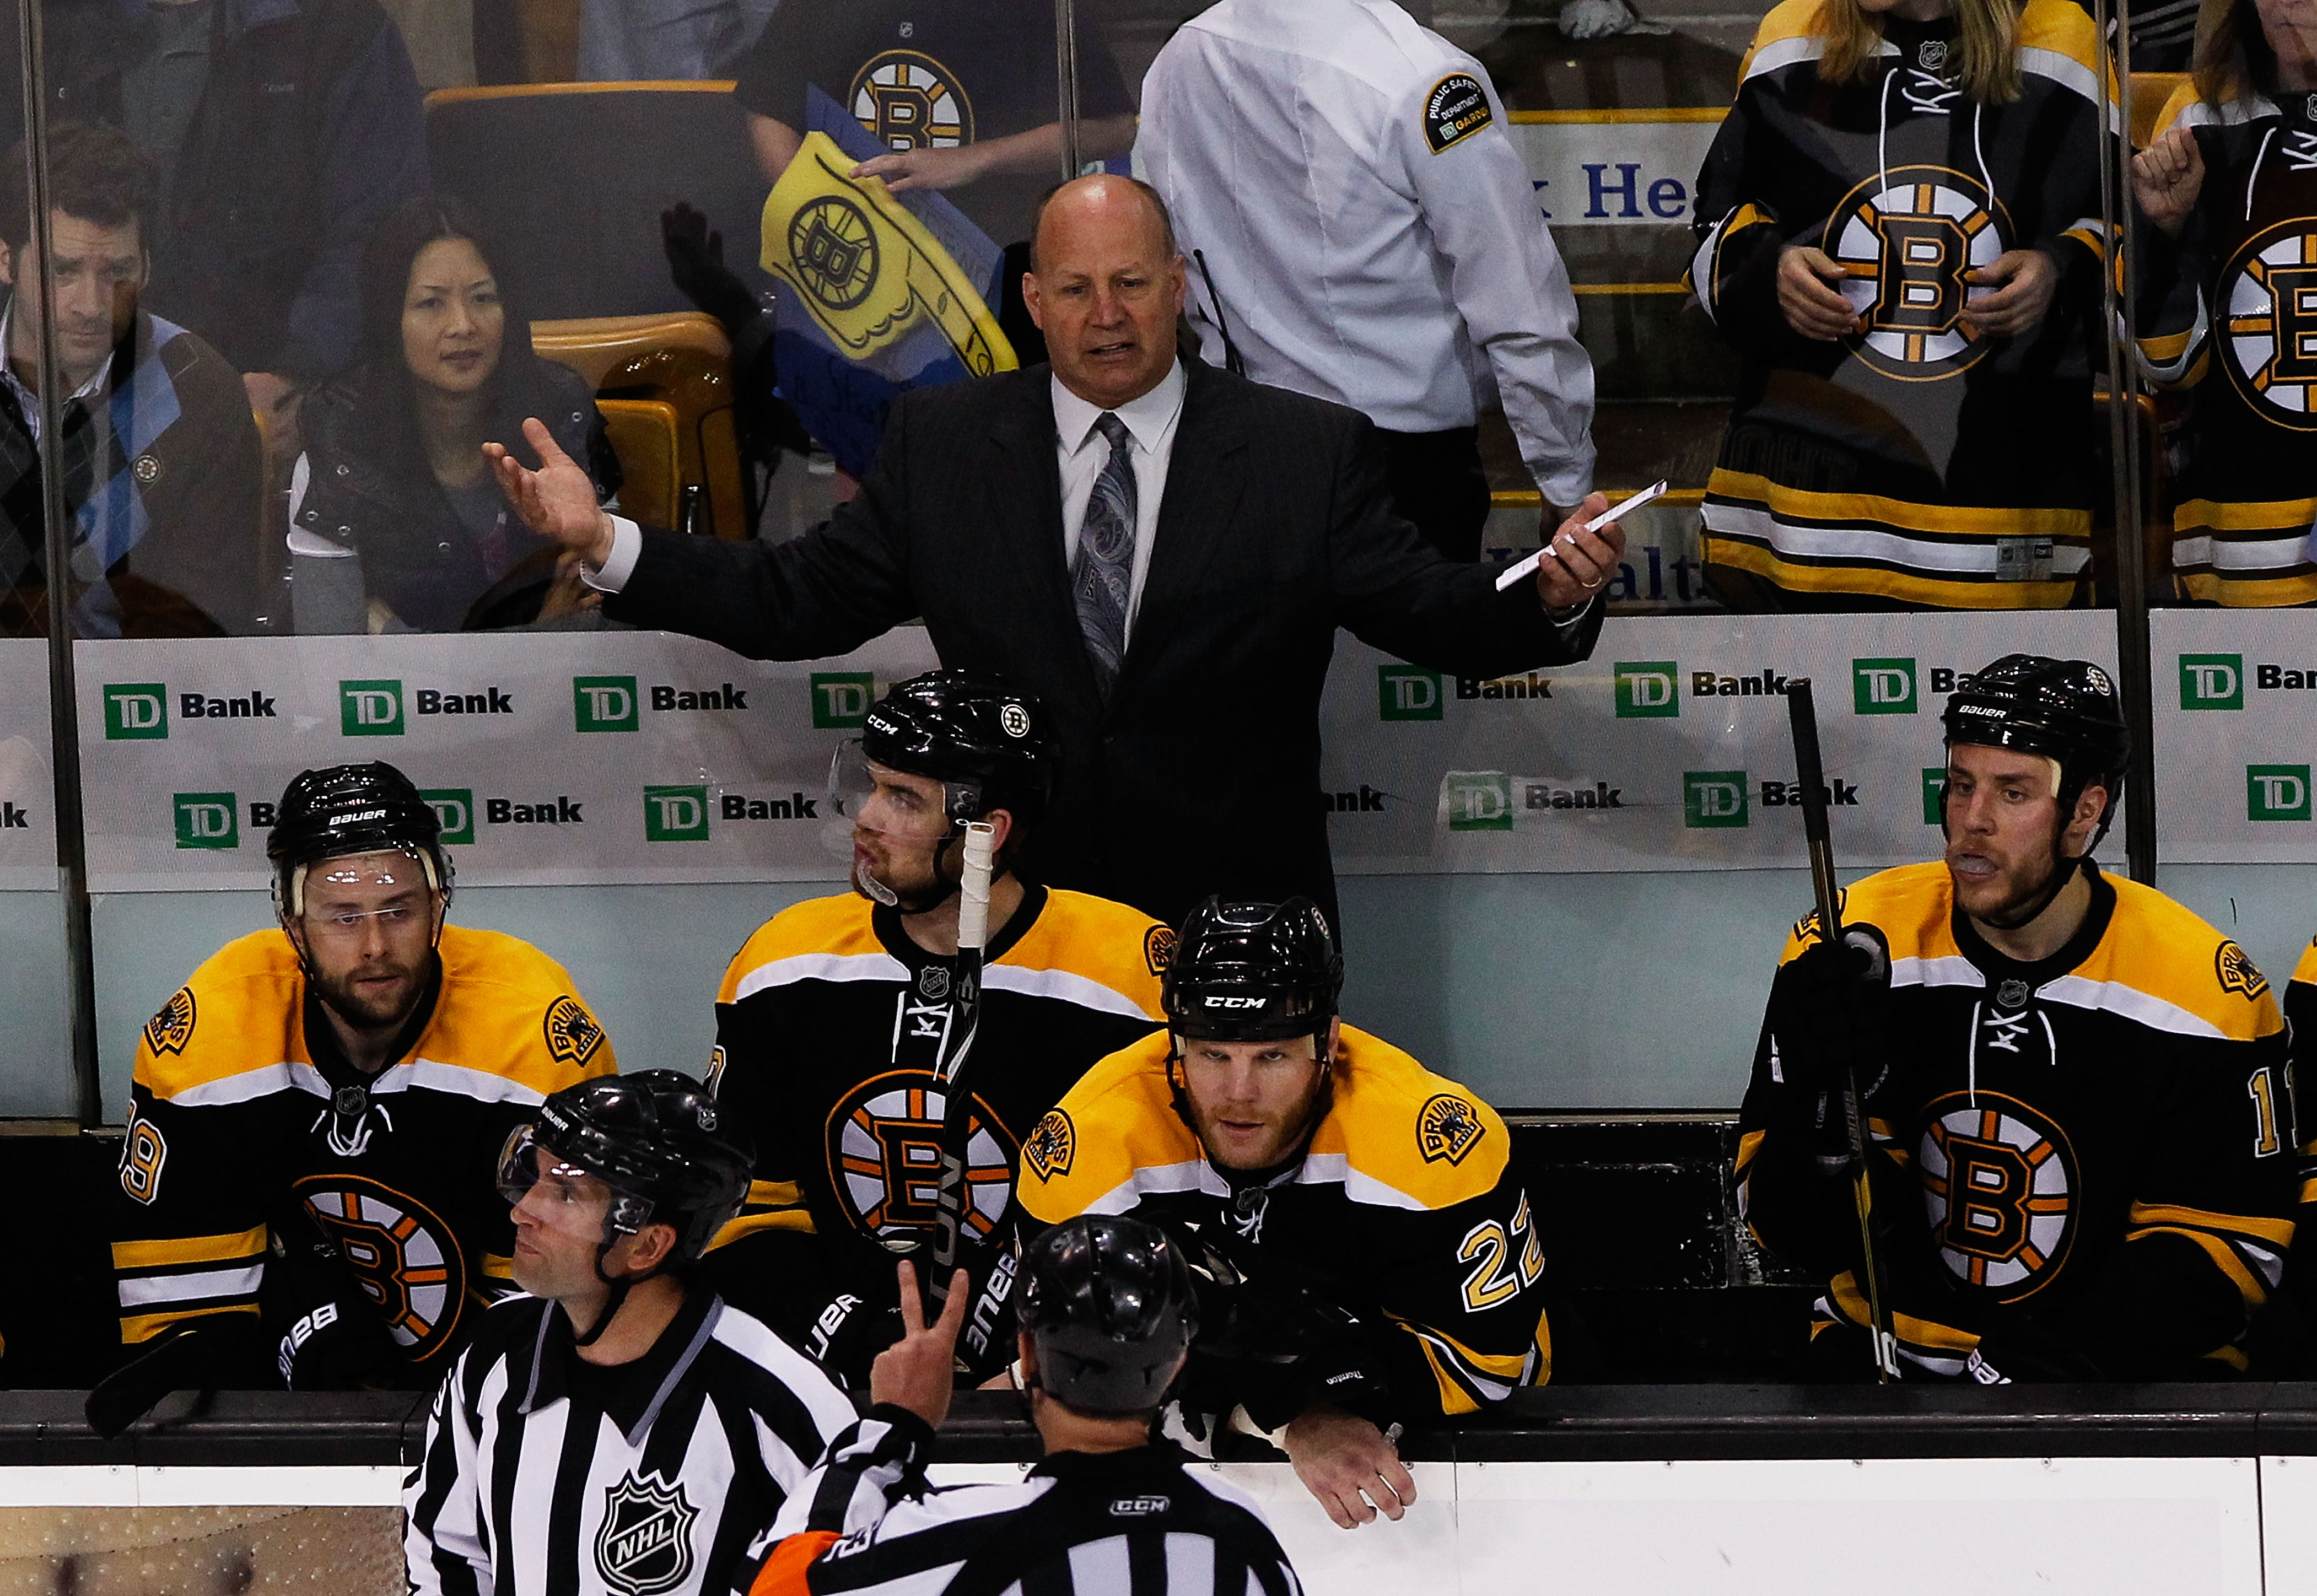 2011 Nhl Playoffs Top 10 Playoff Cliches Uttered By Players And